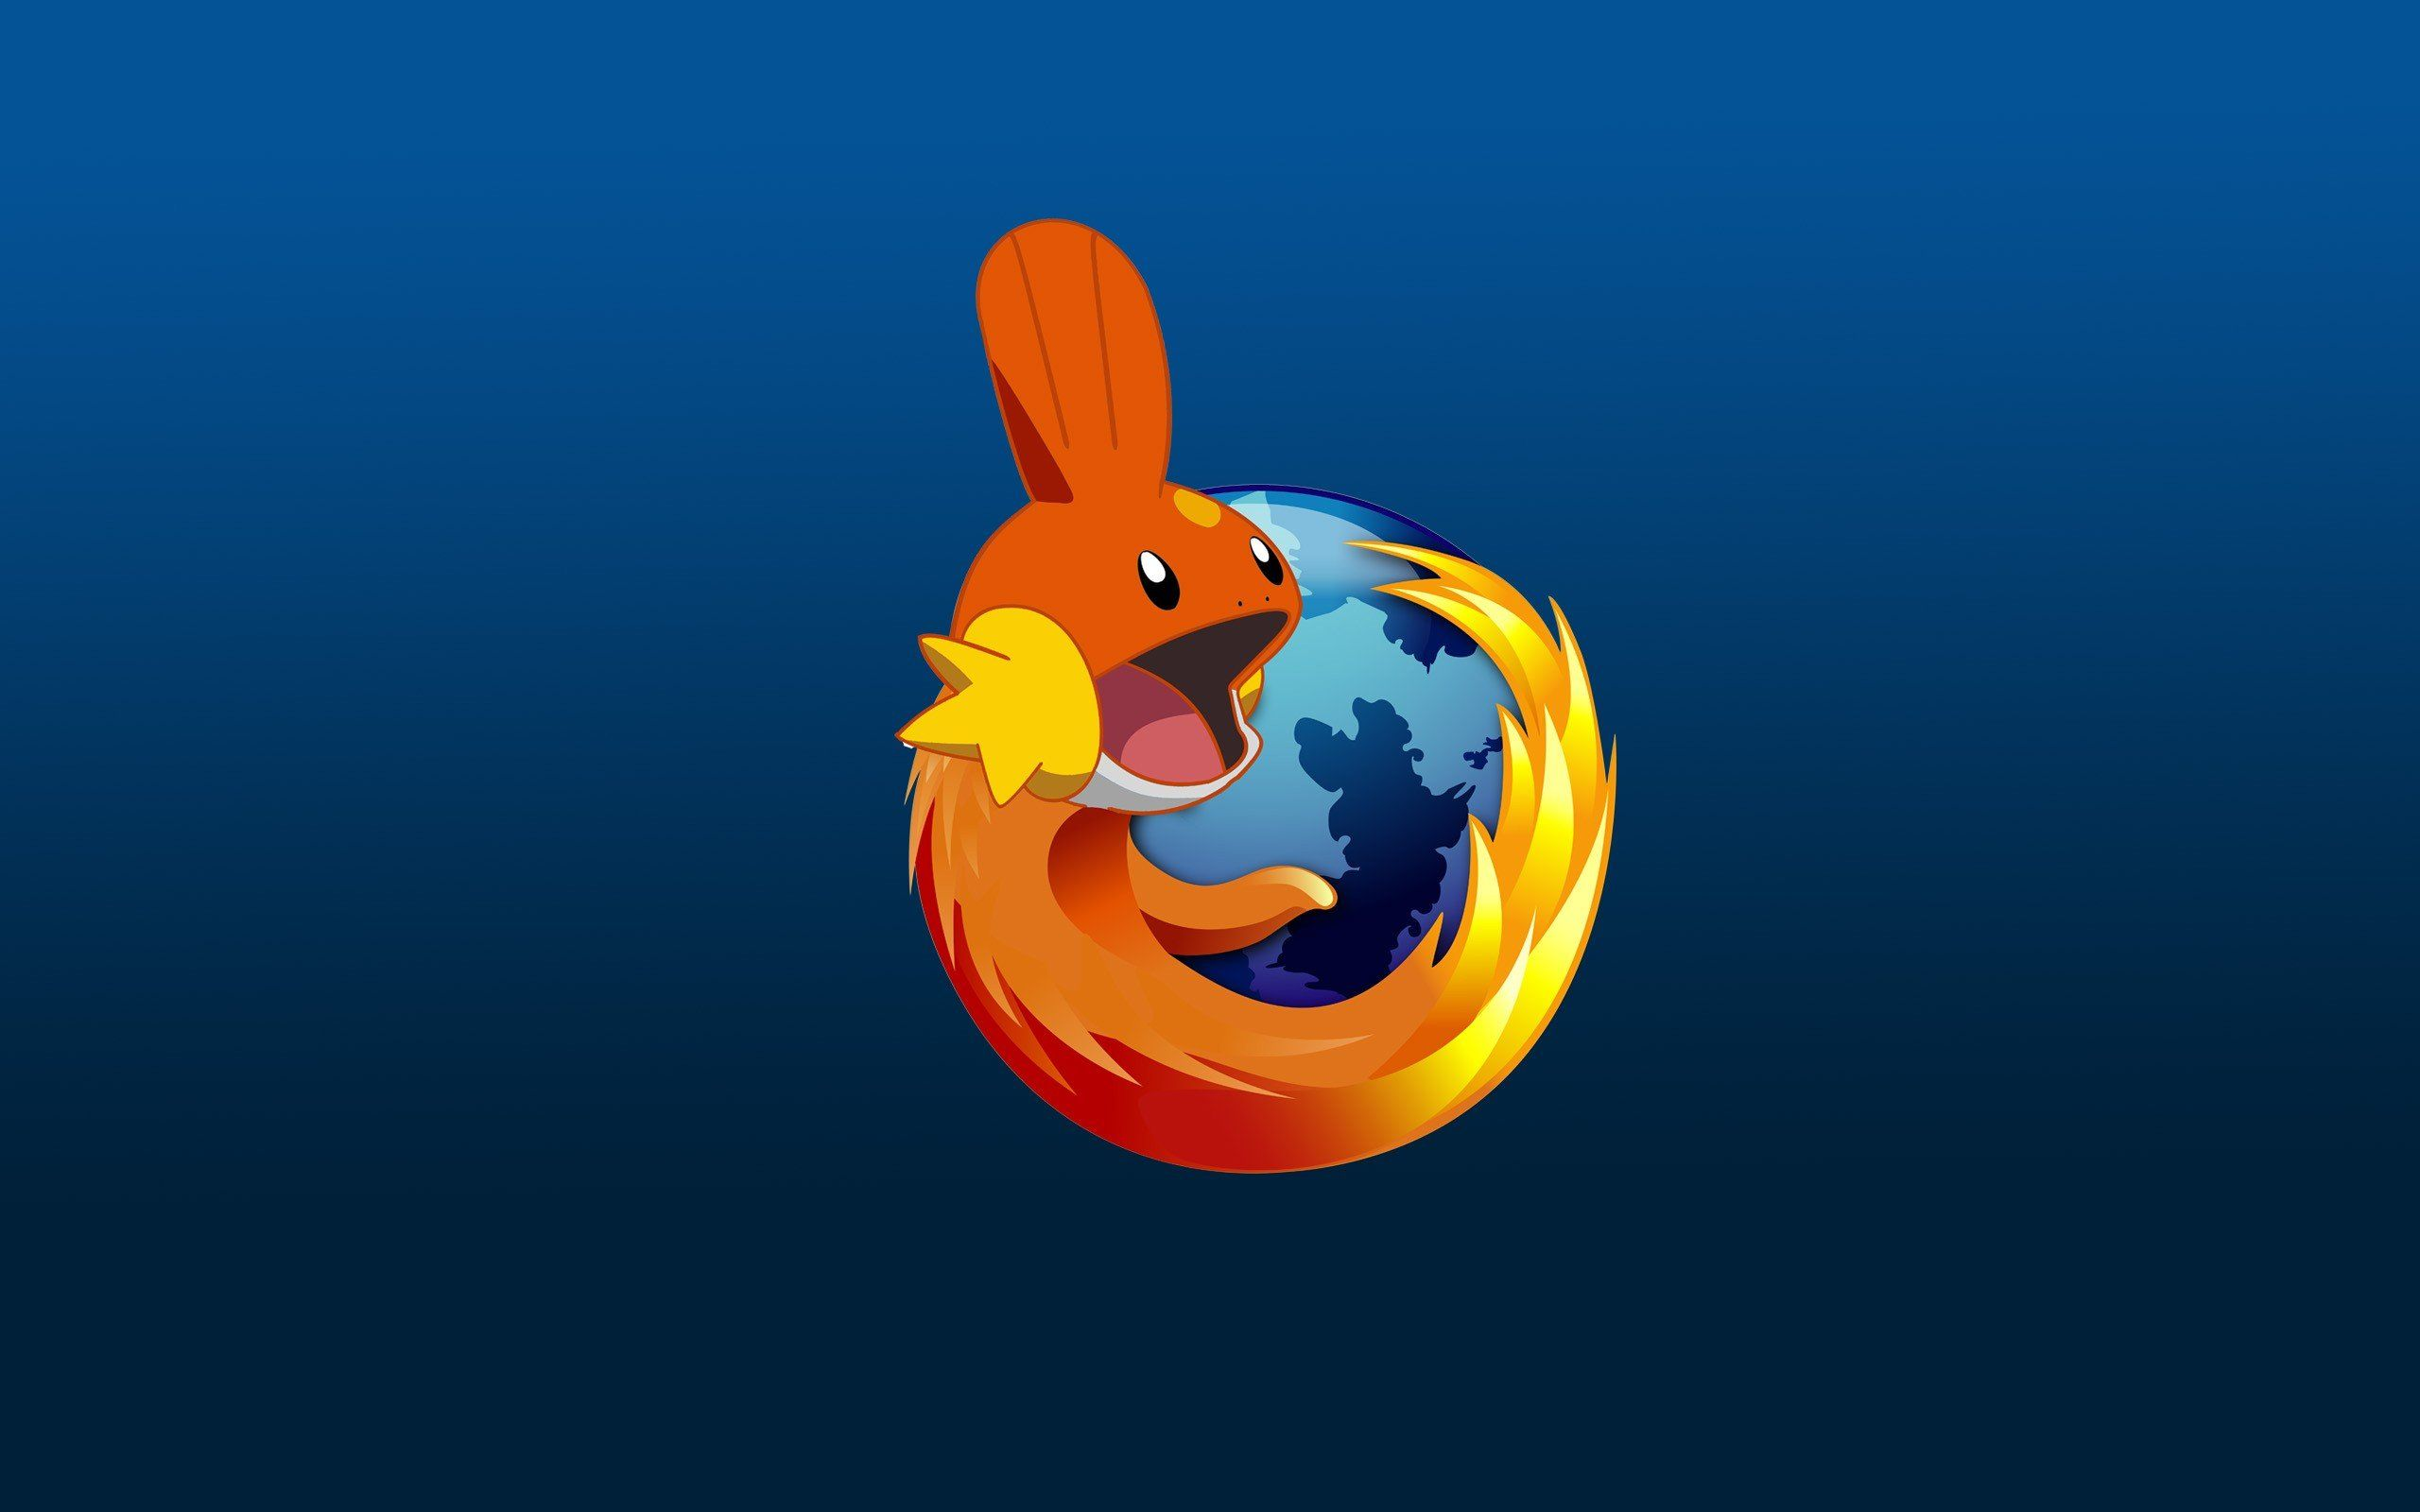 firefox background images